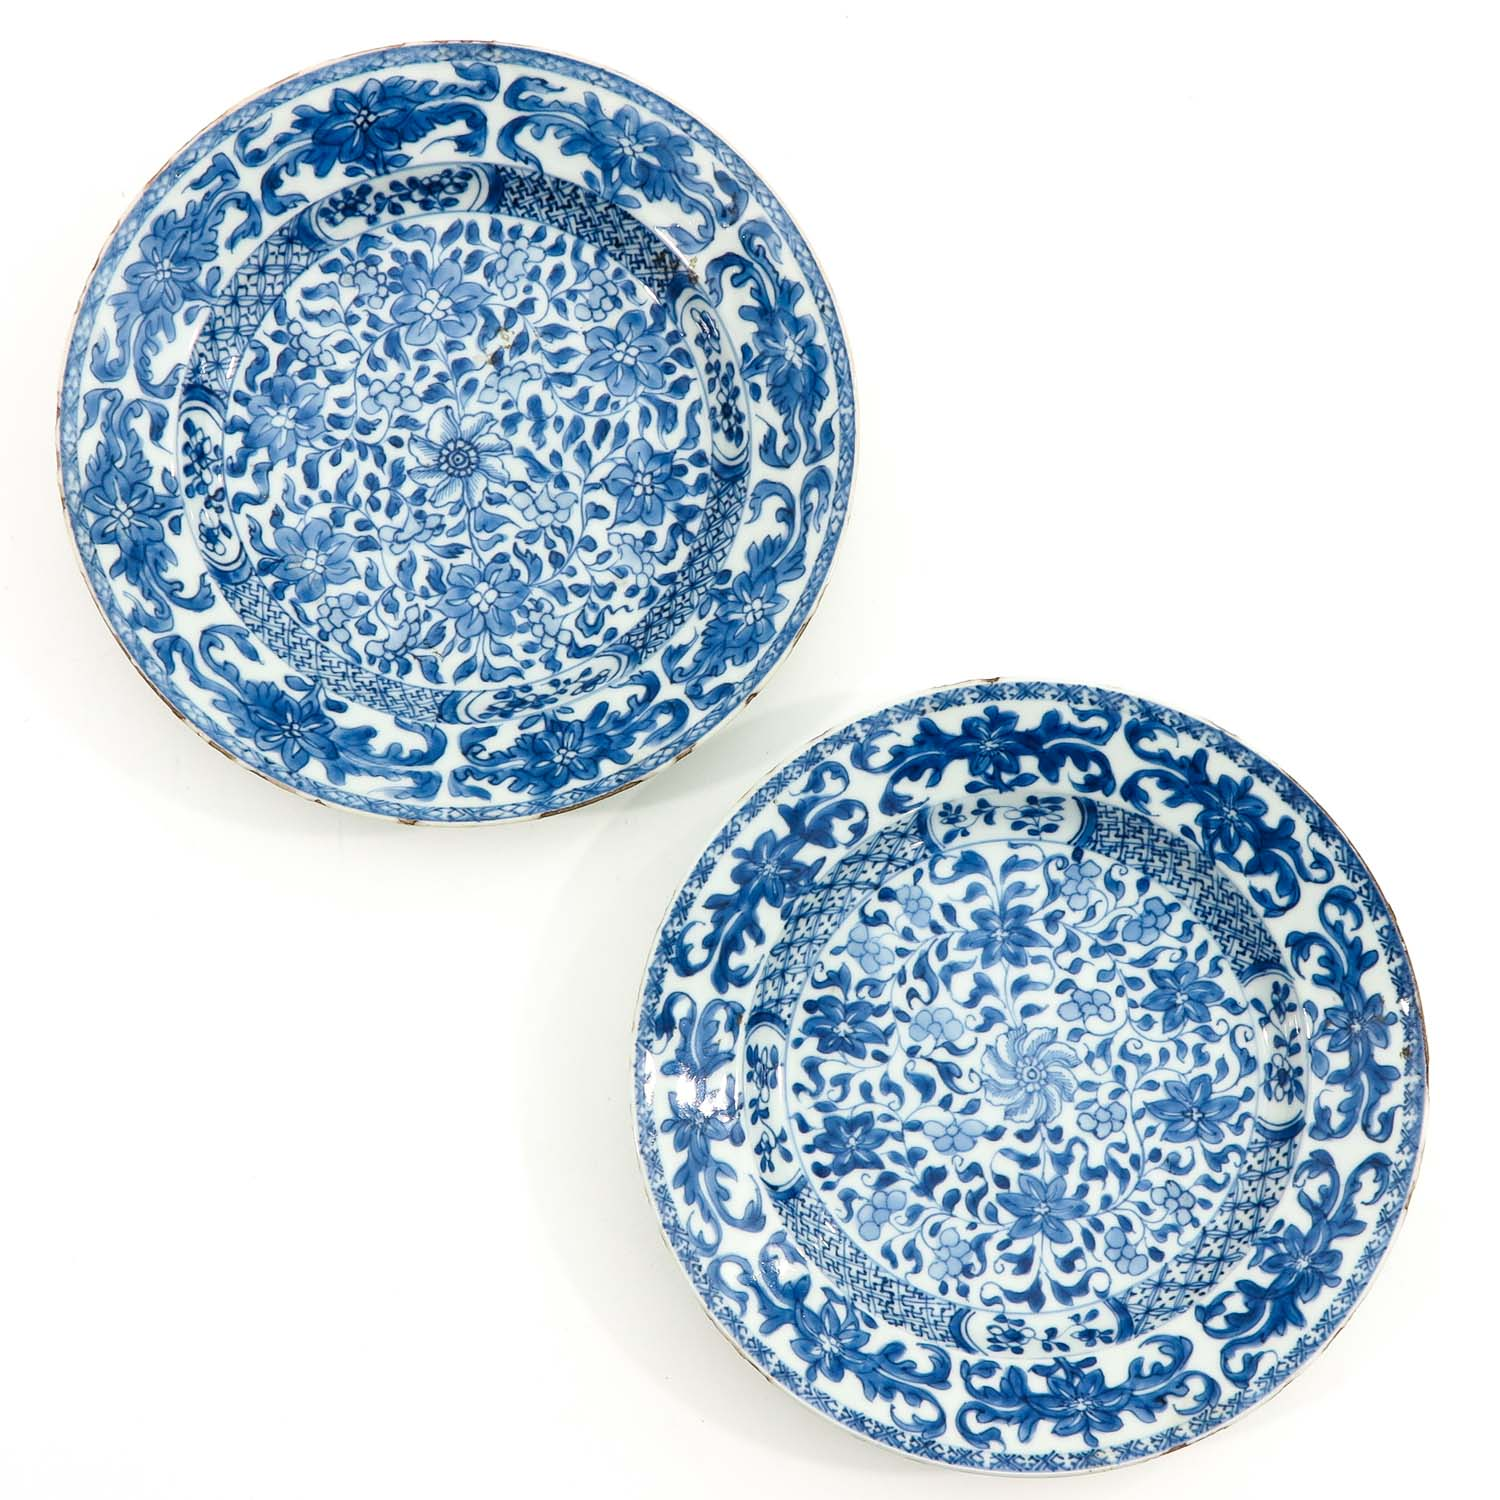 A Series of 5 Blue and White Plates - Image 5 of 10